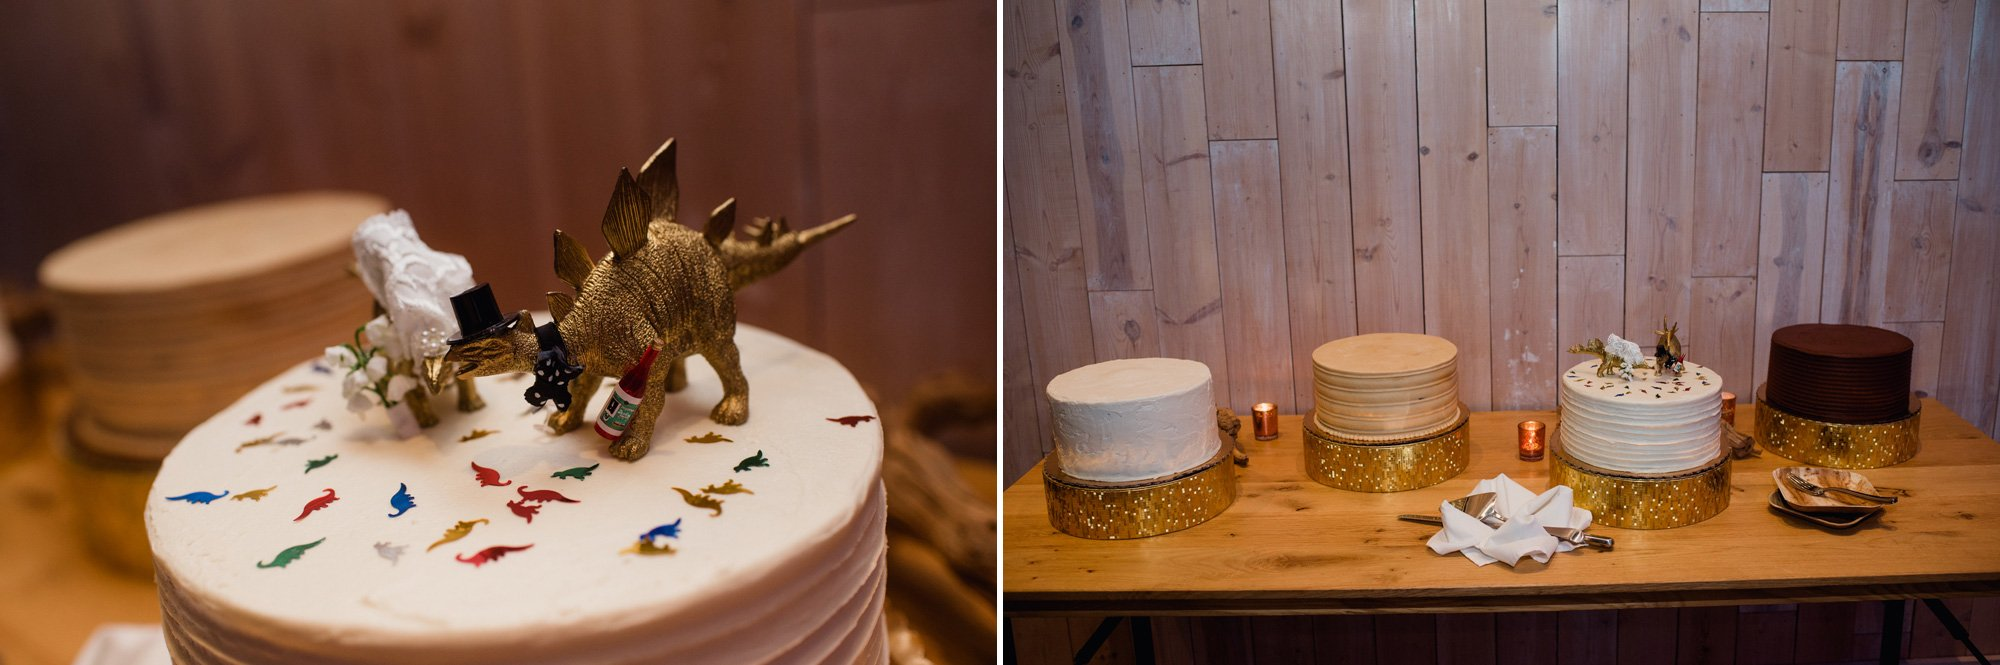 wedding cakes from sugar mama's at peached social house reception